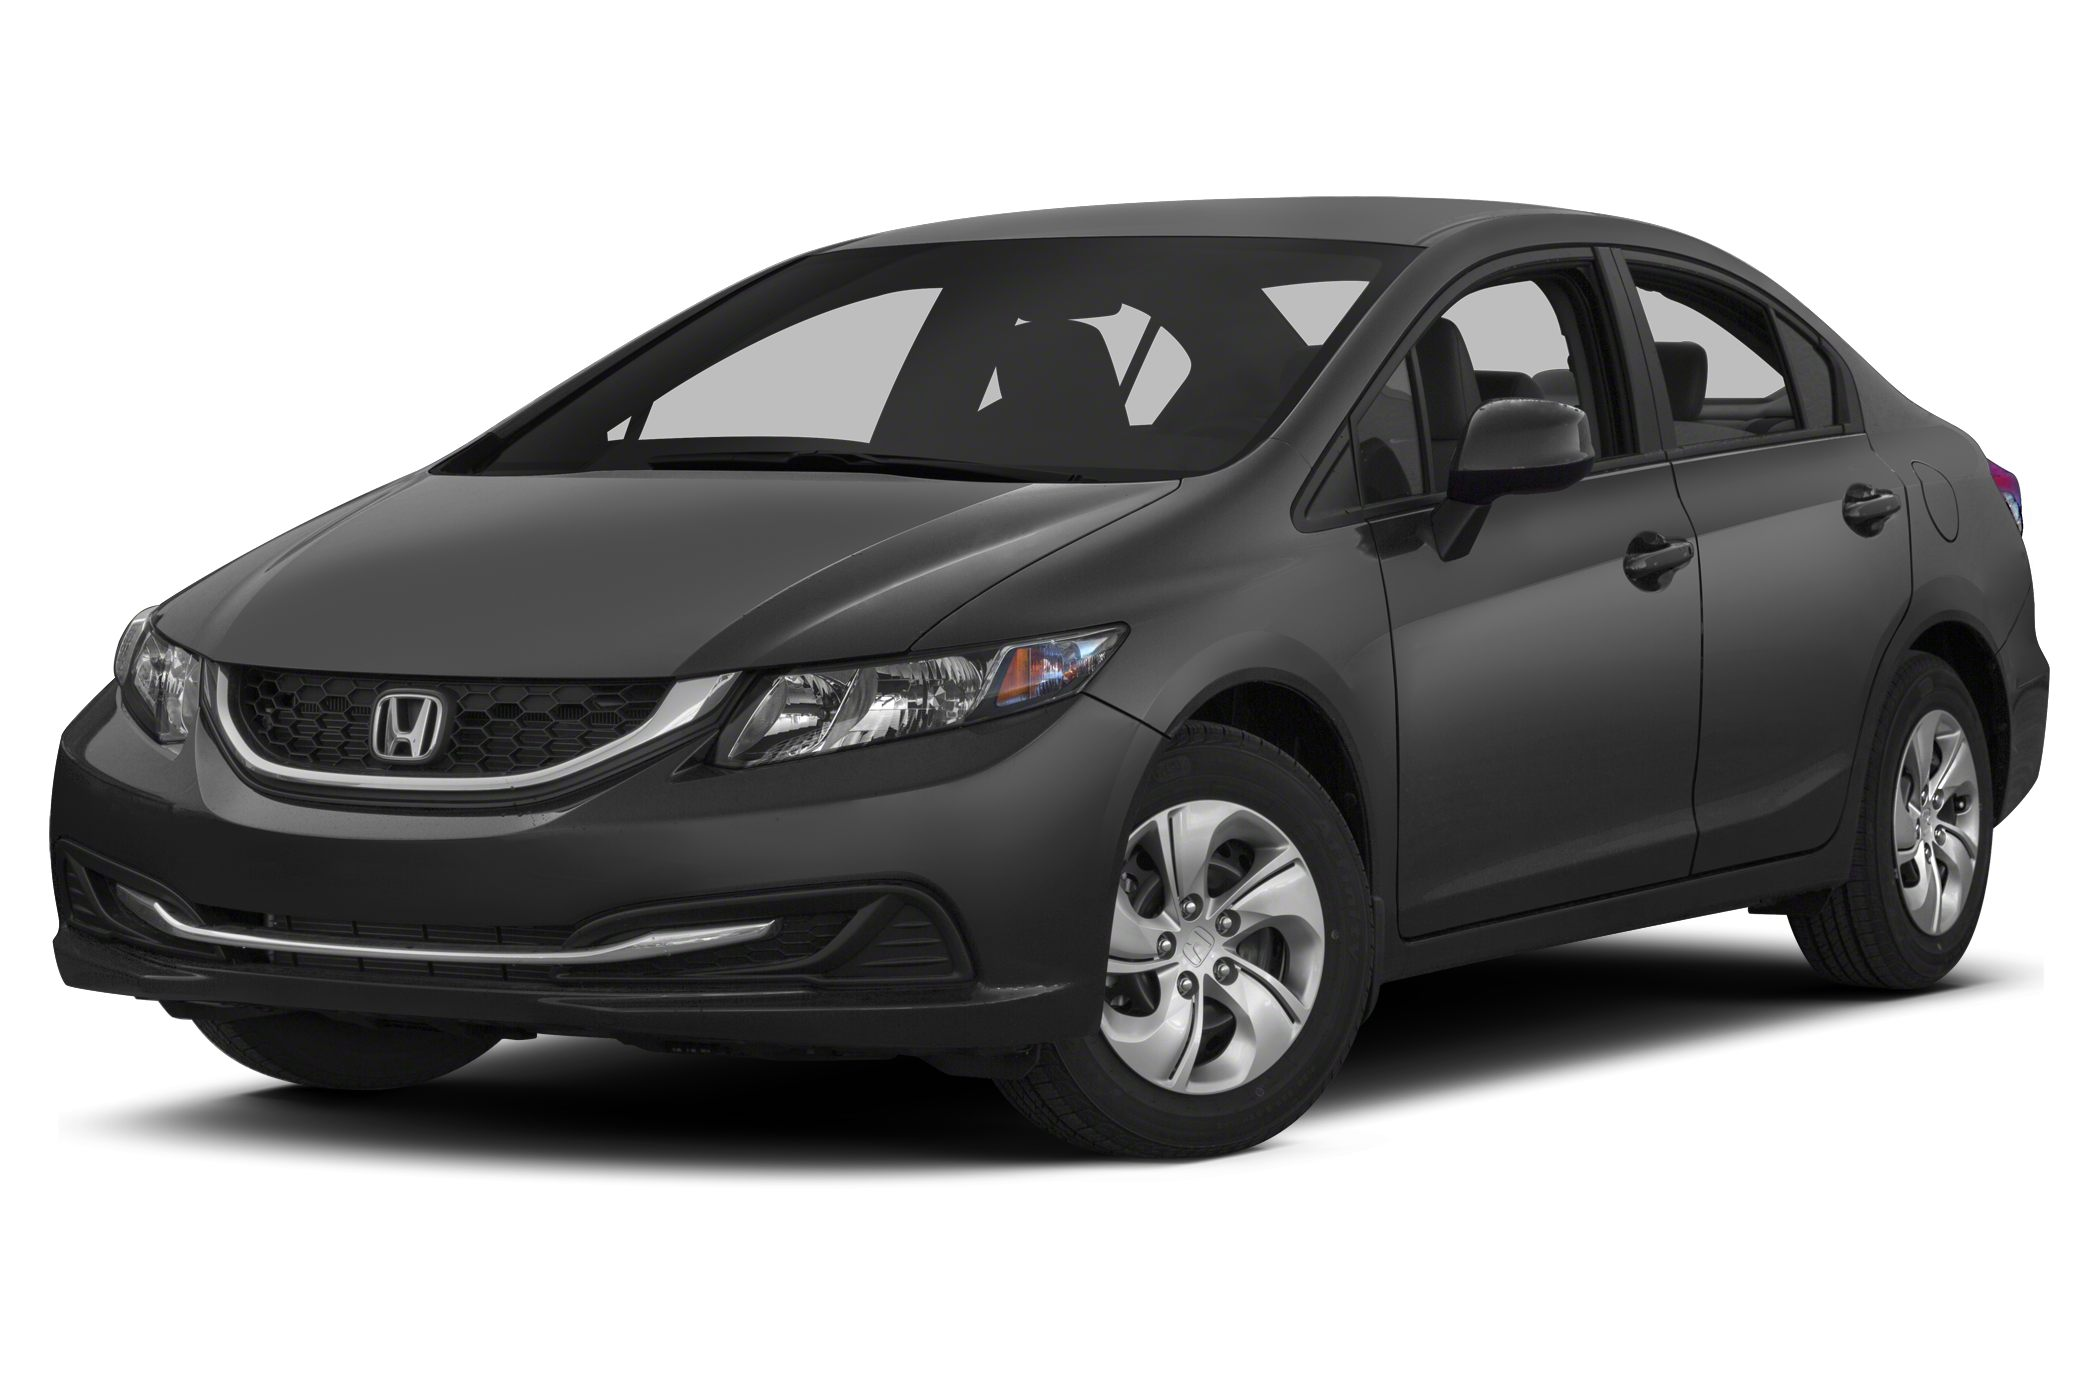 2013 Honda Civic EX Coupe for sale in Midlothian for $17,890 with 28,190 miles.